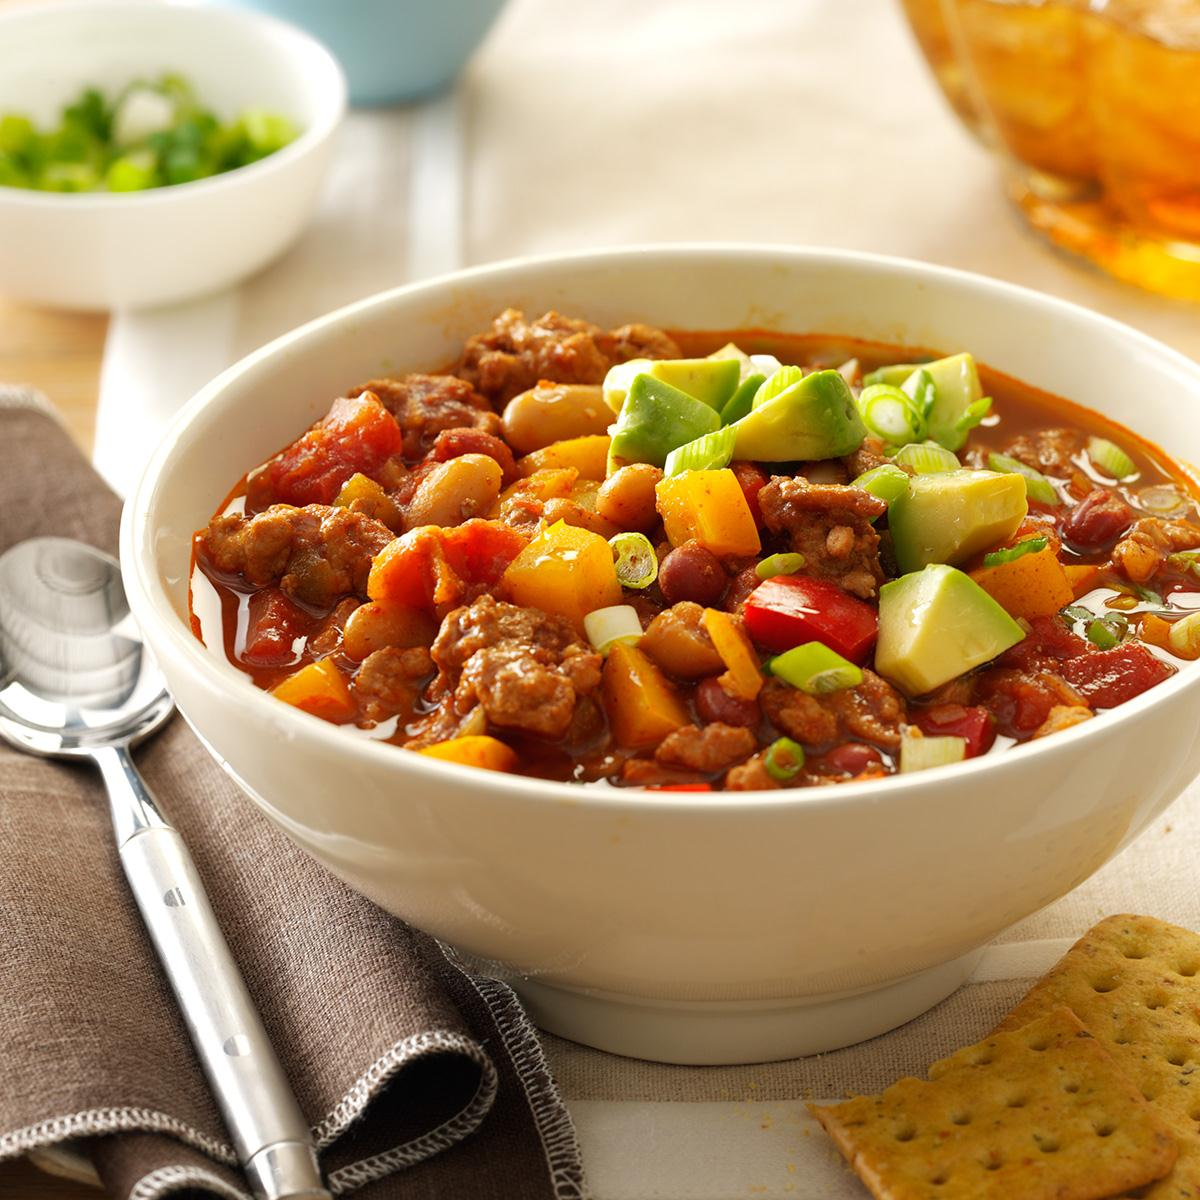 Slow Cooker Turkey Chili Recipe How To Make It Taste Of Home